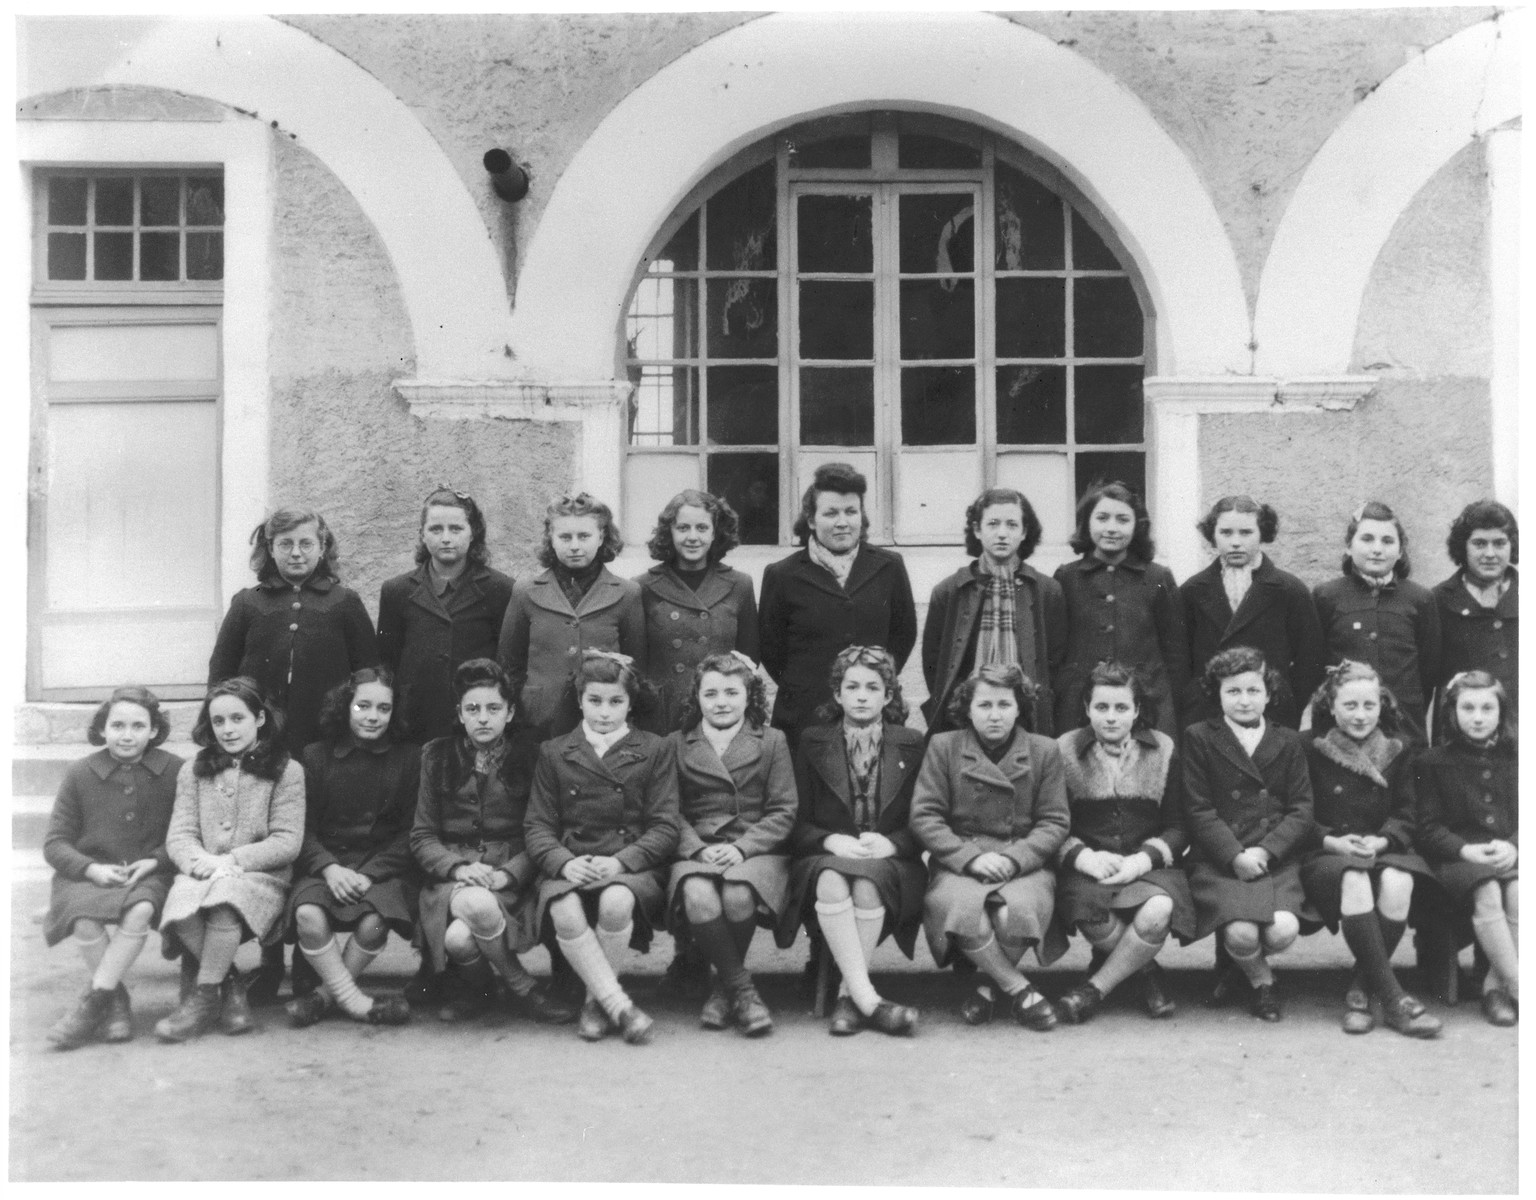 Group portrait of Denise Bystryn and her classmates in a convent school in Cahors where Denise was hidden in 1943.  Denise Bystryn, a hidden child, is seated in the first row on the far left.